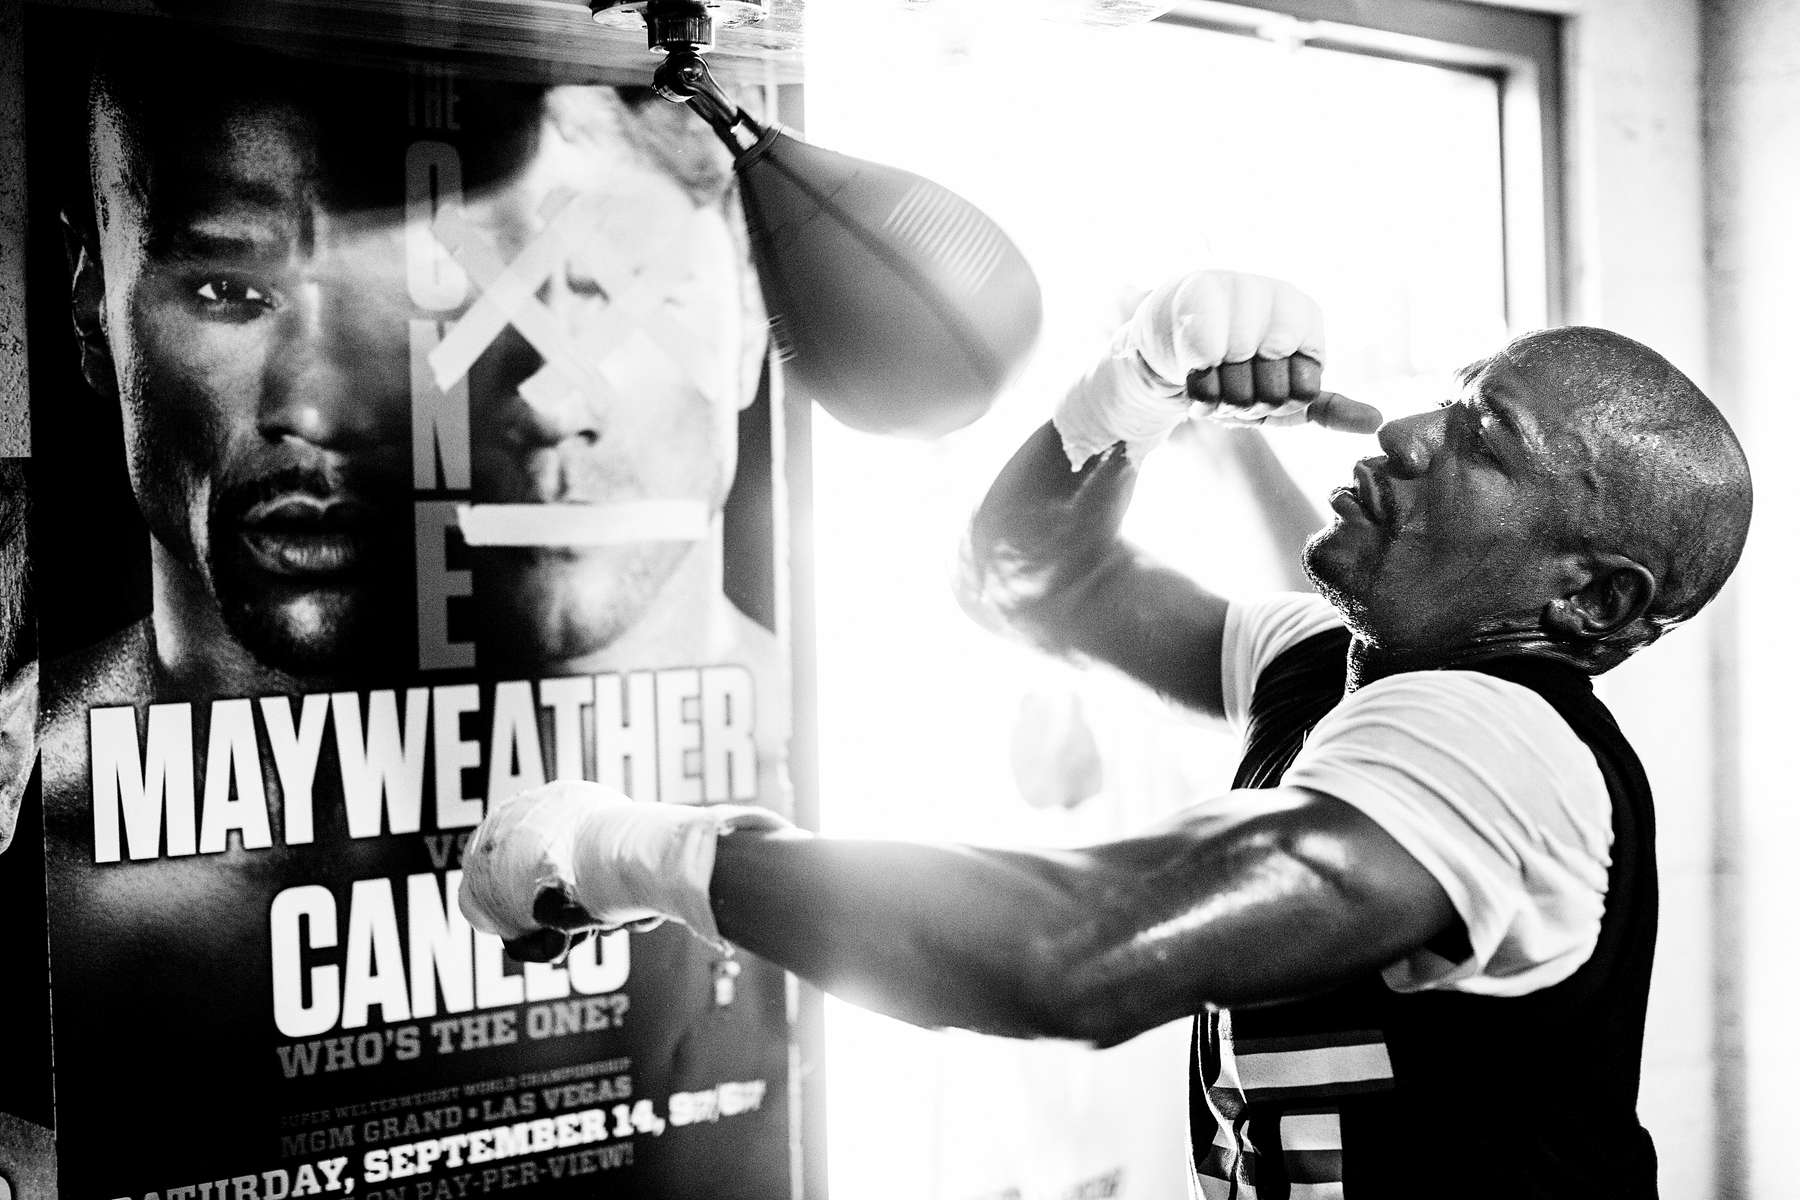 LAS VEGAS, NV - JULY 26: After instructing his cut man to tape over Alvarez's eyes and mouth on a fight poster, Mayweather works the speed bag in his Las Vegas gym.(Photo by Benjamin Lowy/Reportage by Getty Images)